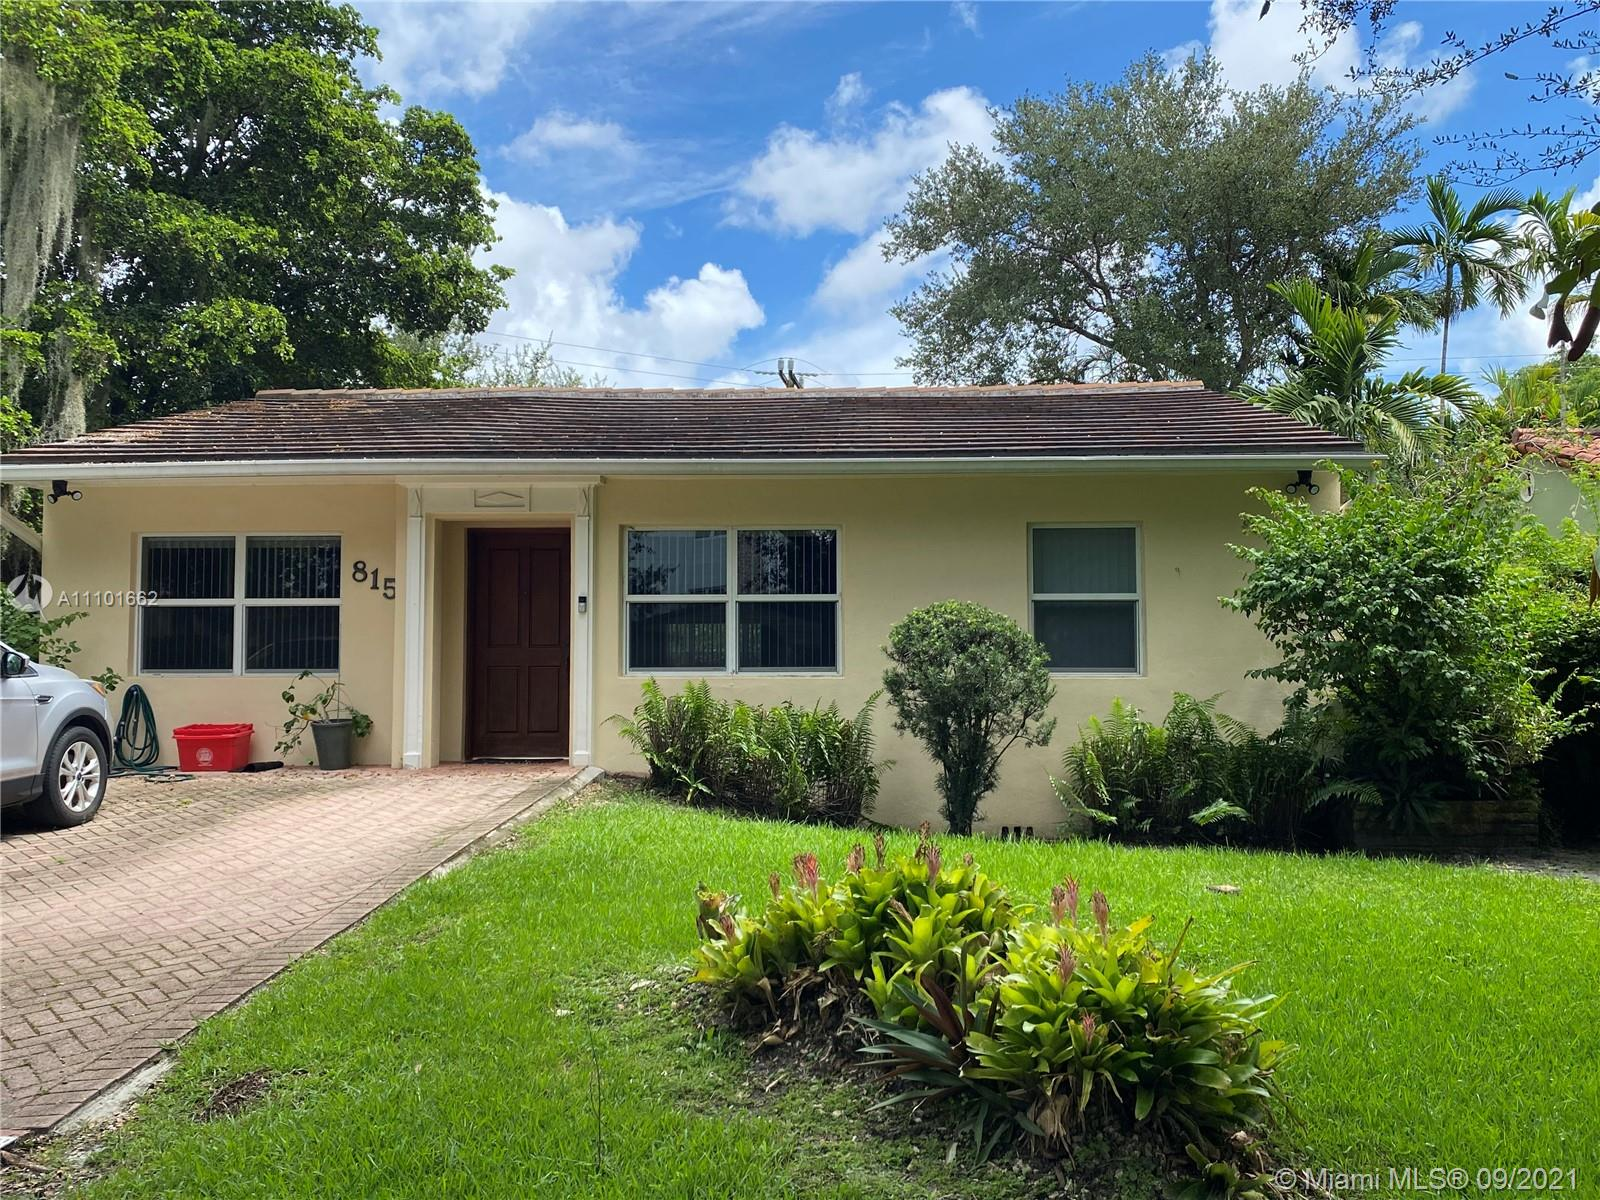 Single Family Home,For Sale,815 Monterey St, Coral Gables, Florida 33134,Brickell,realty,broker,condos near me